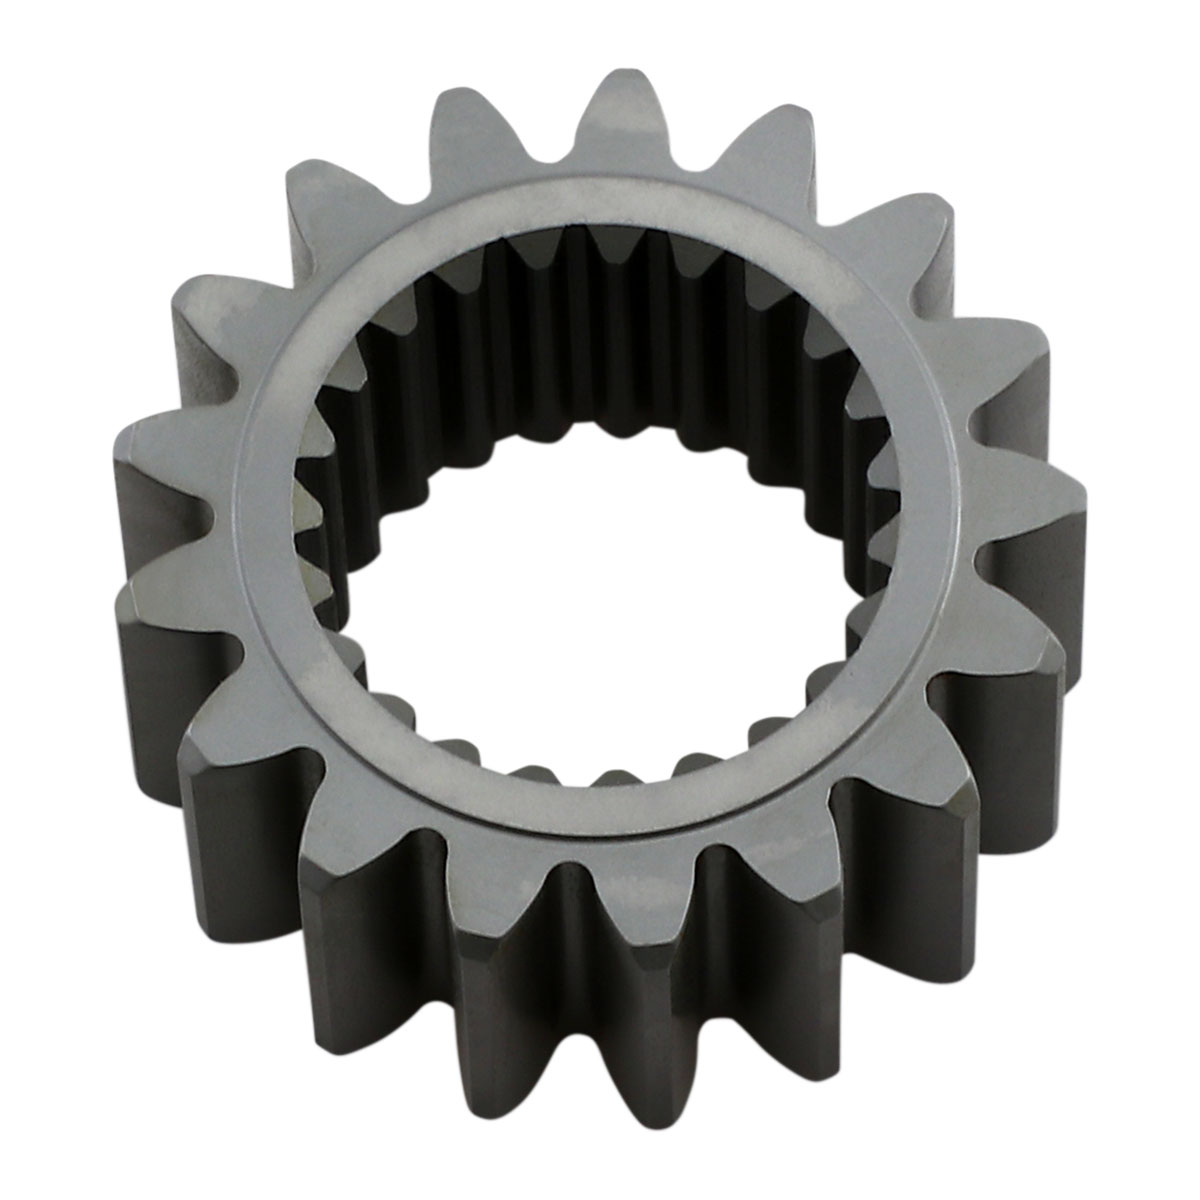 Andrews Countershaft 5th Gear